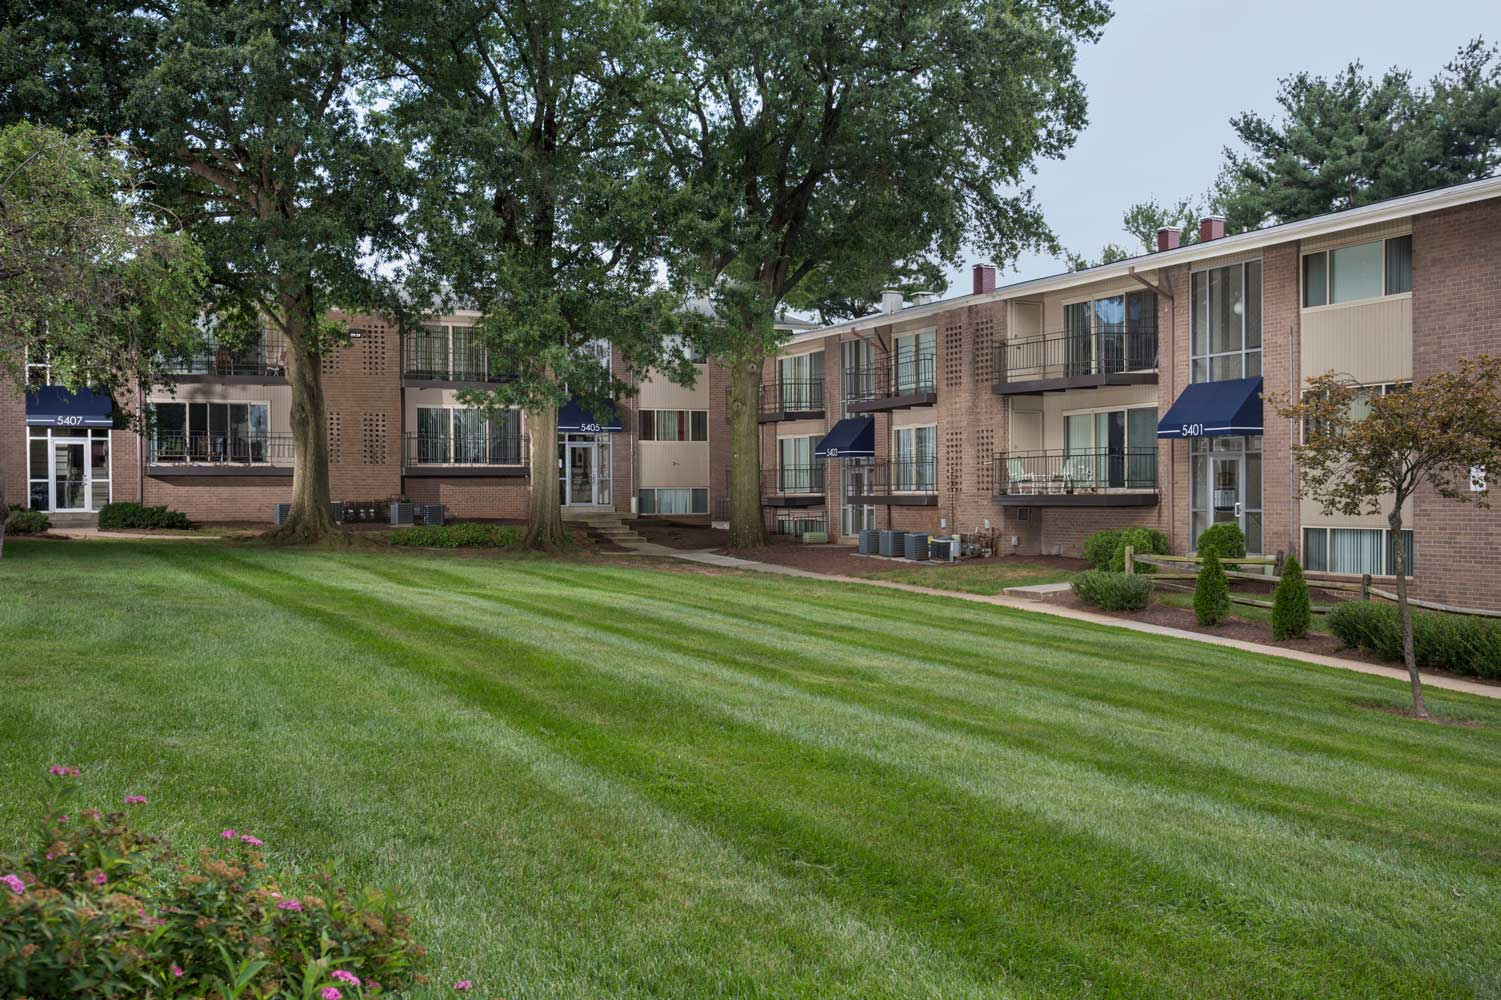 Professionally maintained grounds at Carrollon Manor Apartments in New Carrollton, MD